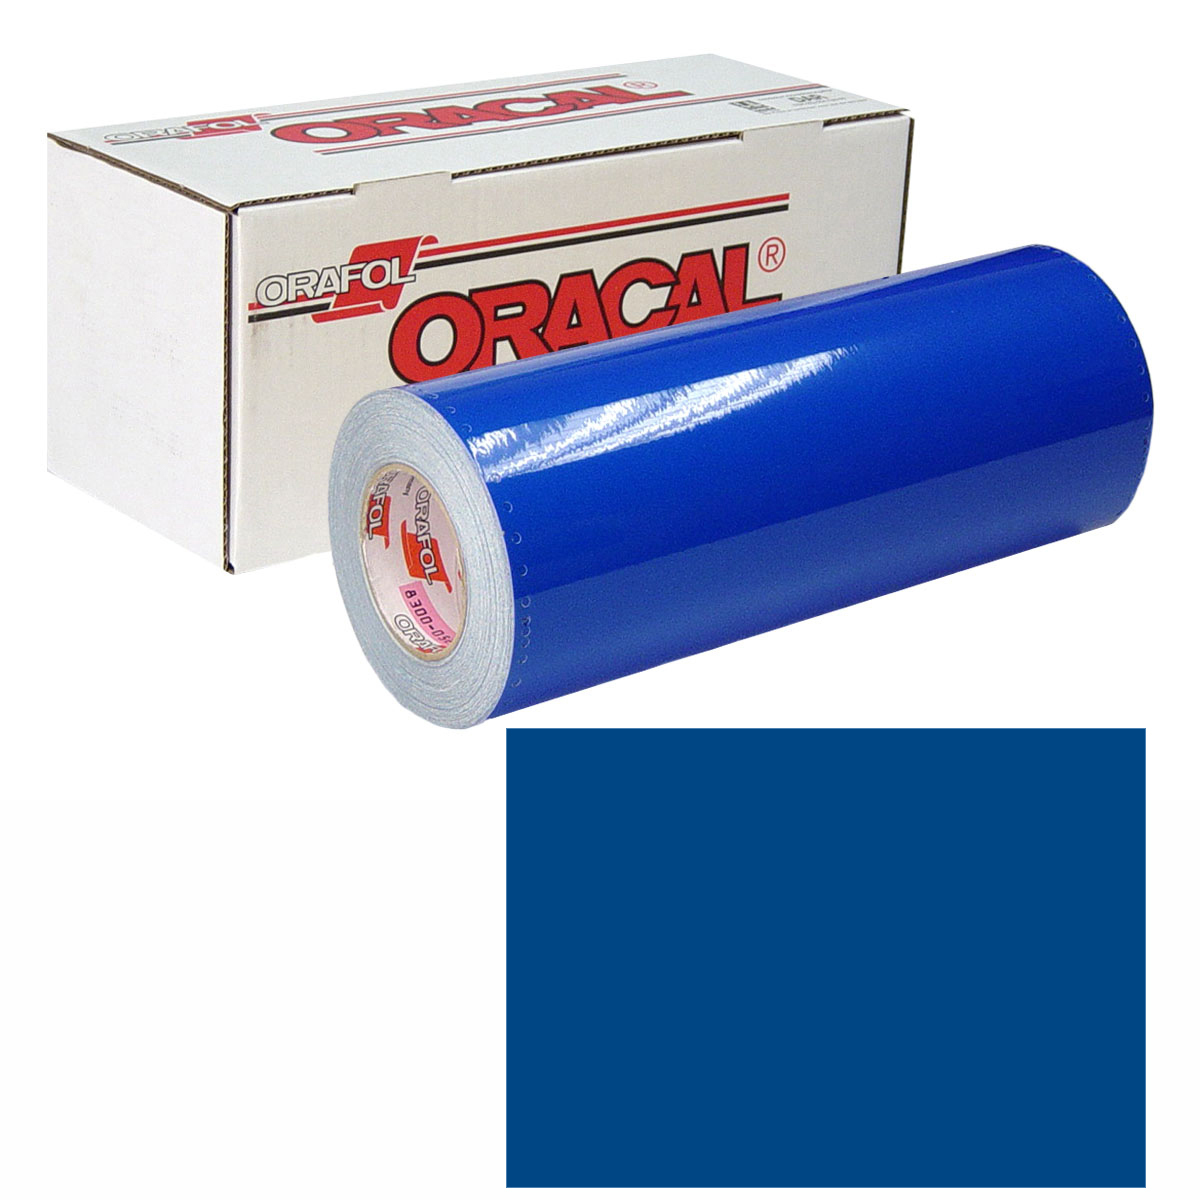 ORACAL 631 Unp 24In X 50Yd 051 Gentian Blue